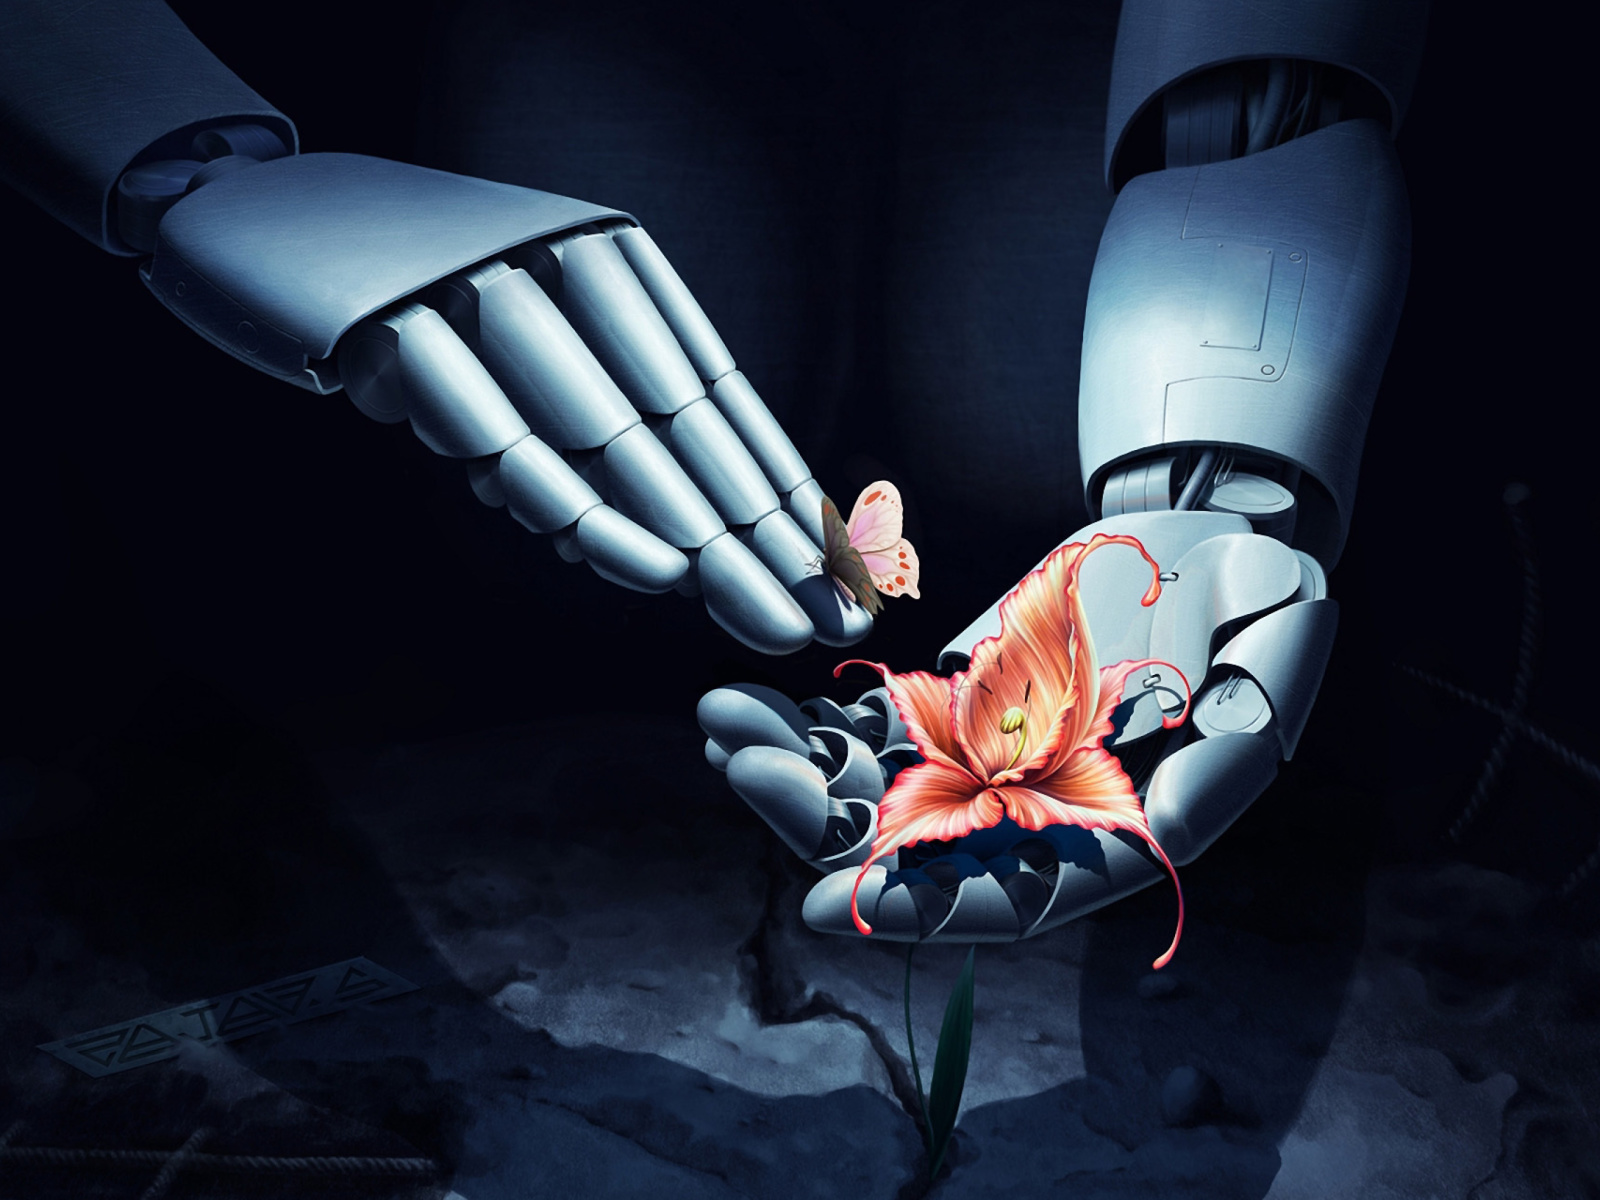 Das Art Robot Hand with Flower Wallpaper 1600x1200